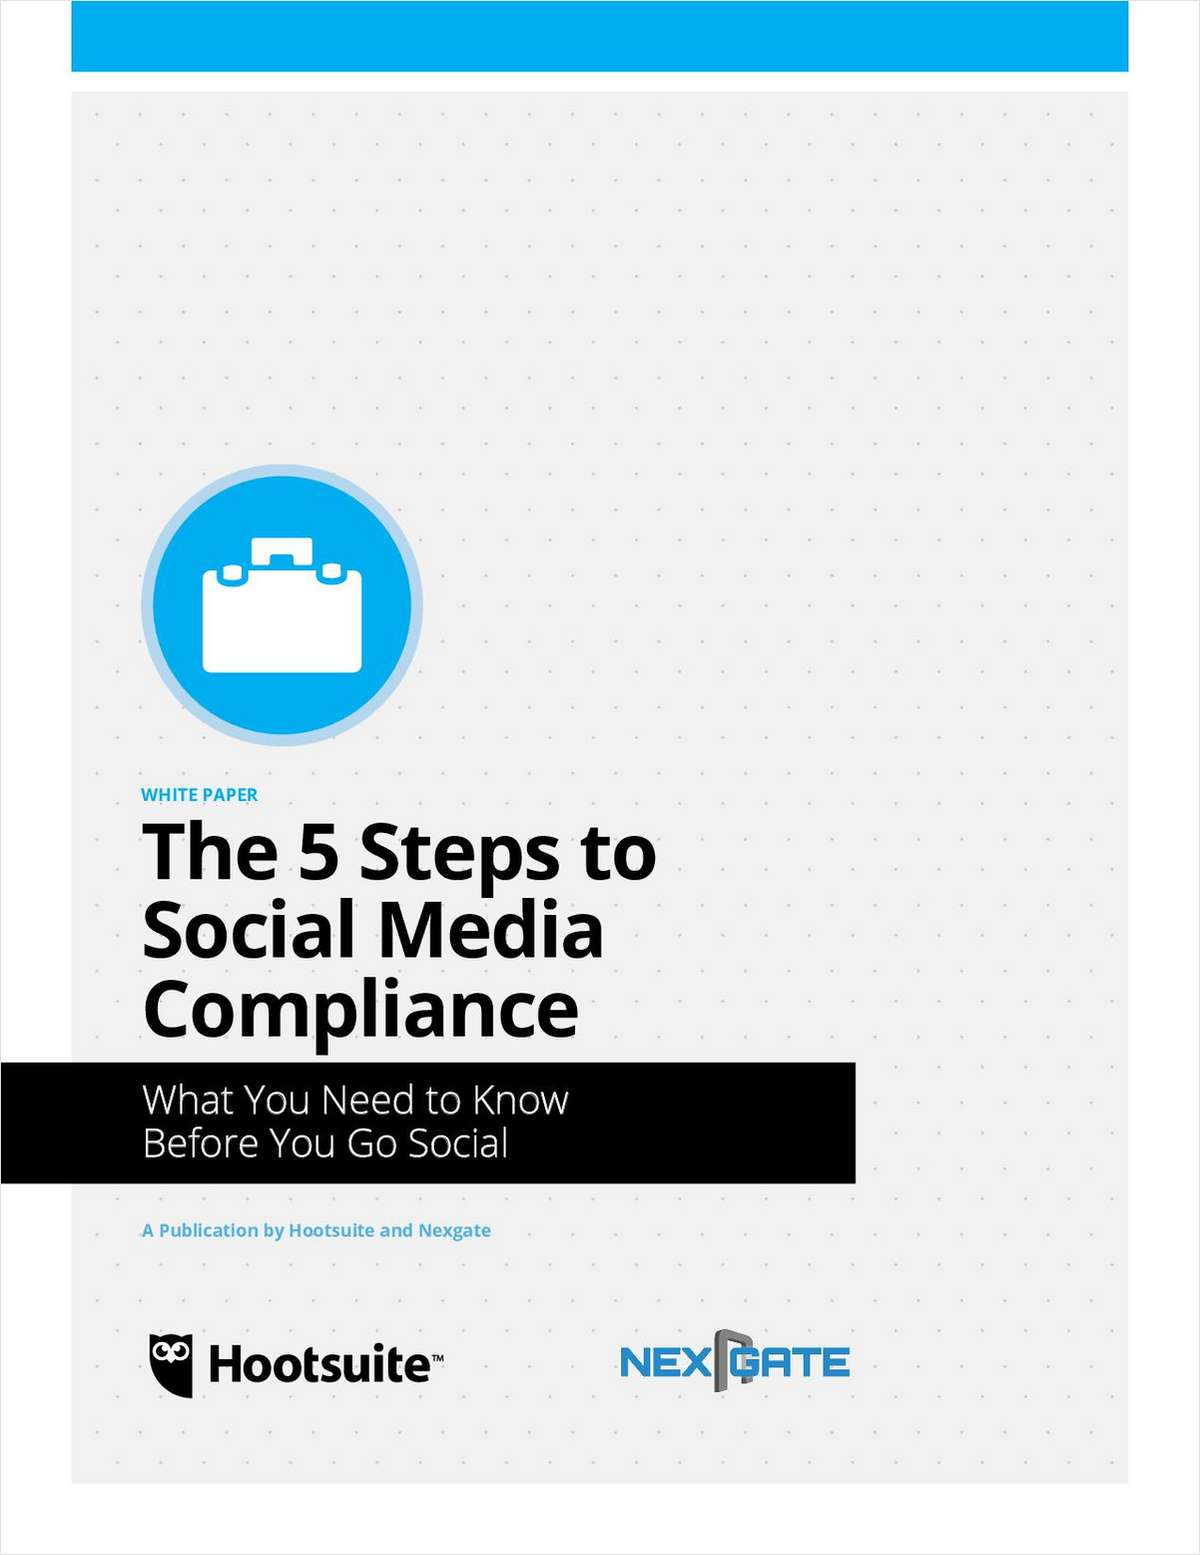 The 5 Steps to Social Media Compliance